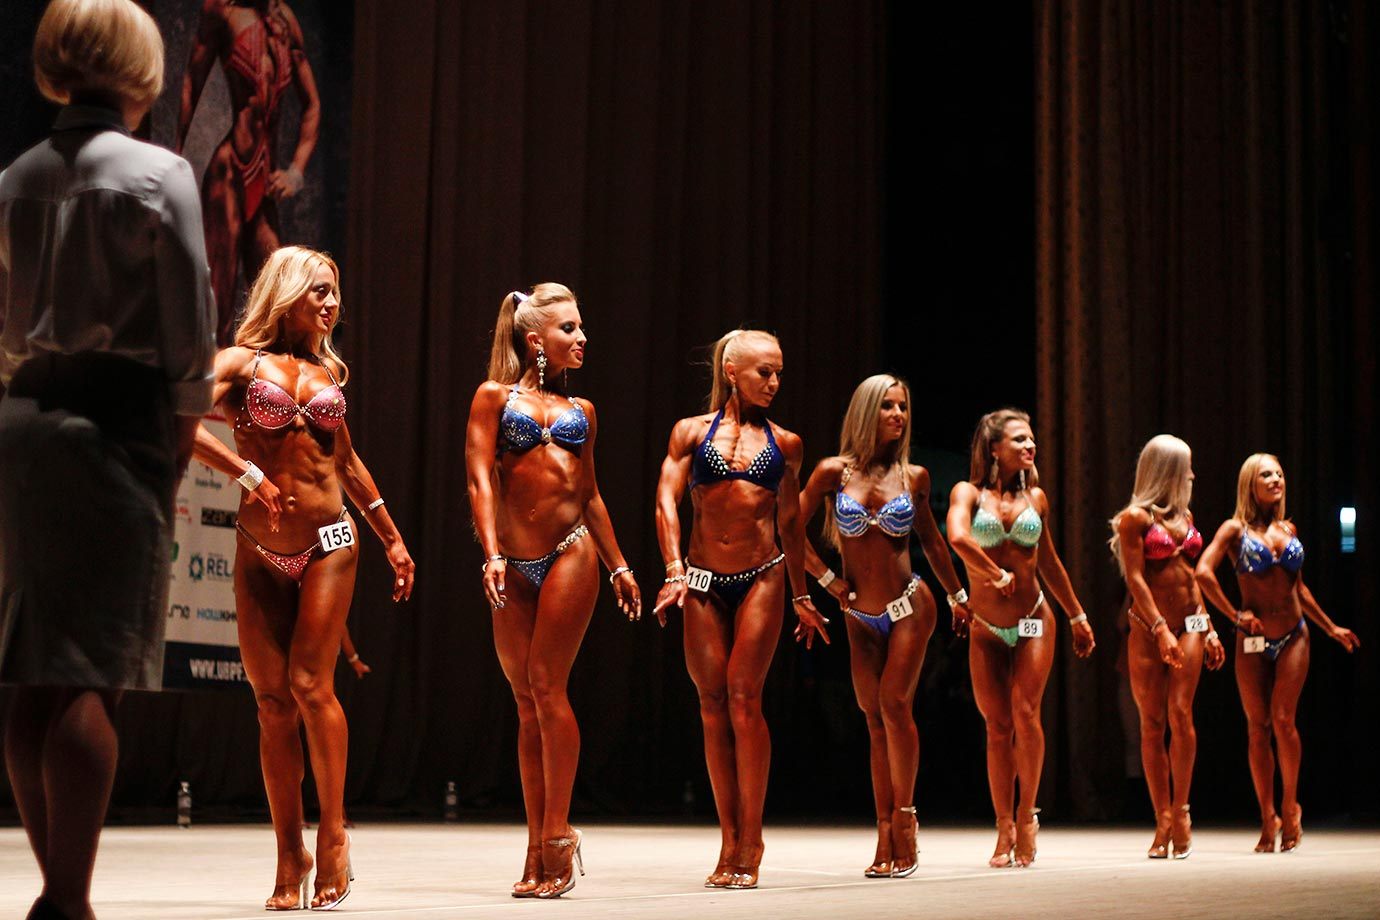 Body builders preparing backstage during the Bodybuilding Cup in Kiev, which includes classic bodybuilding, physicist and body fitness and bikini competition. We're guessing this is the bikini portion.